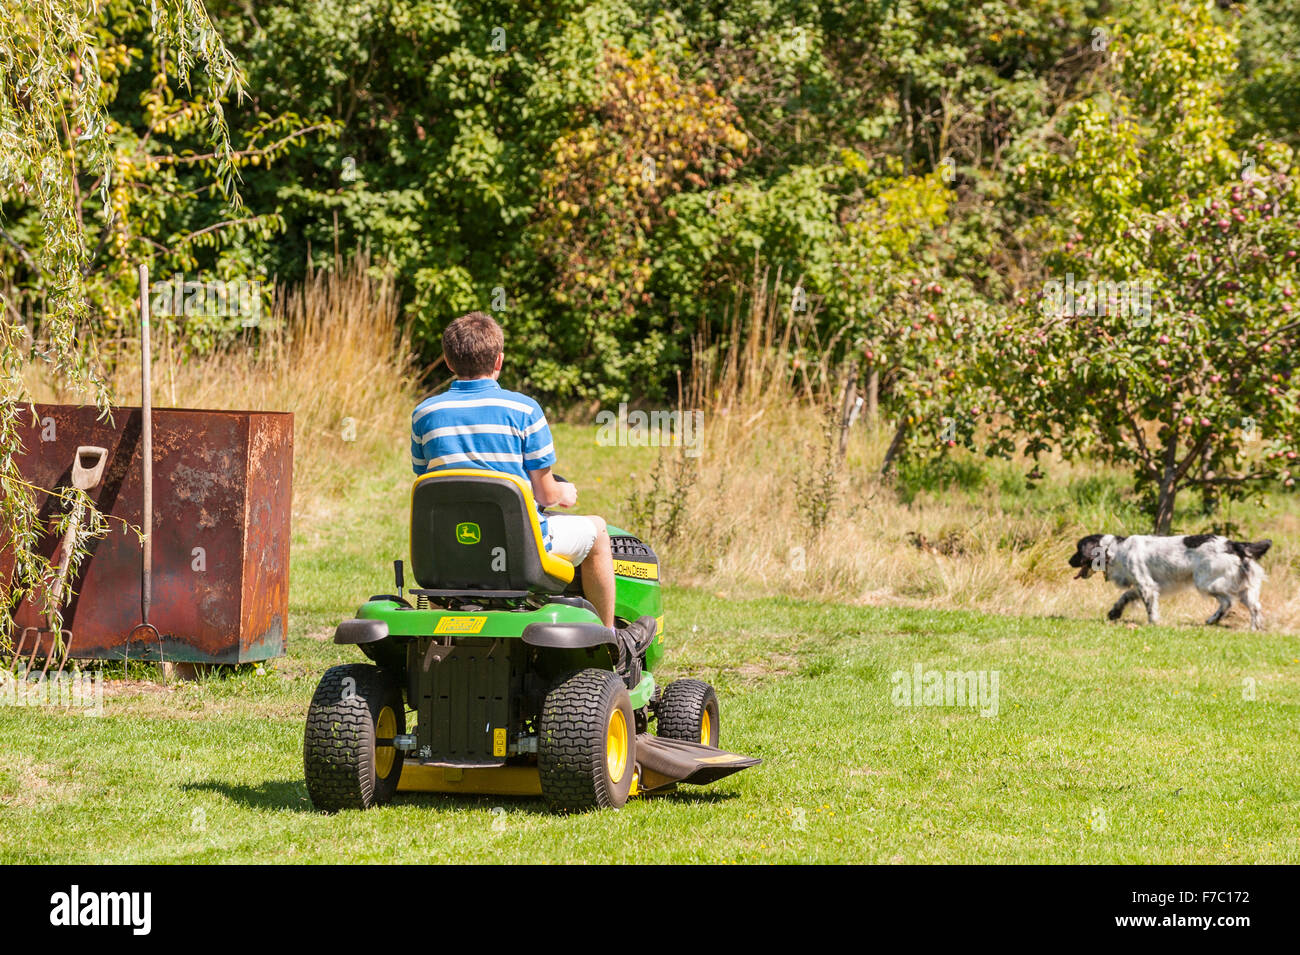 A 15 year old boy mowing the lawn on a John Deere ride on mower in the Uk - Stock Image